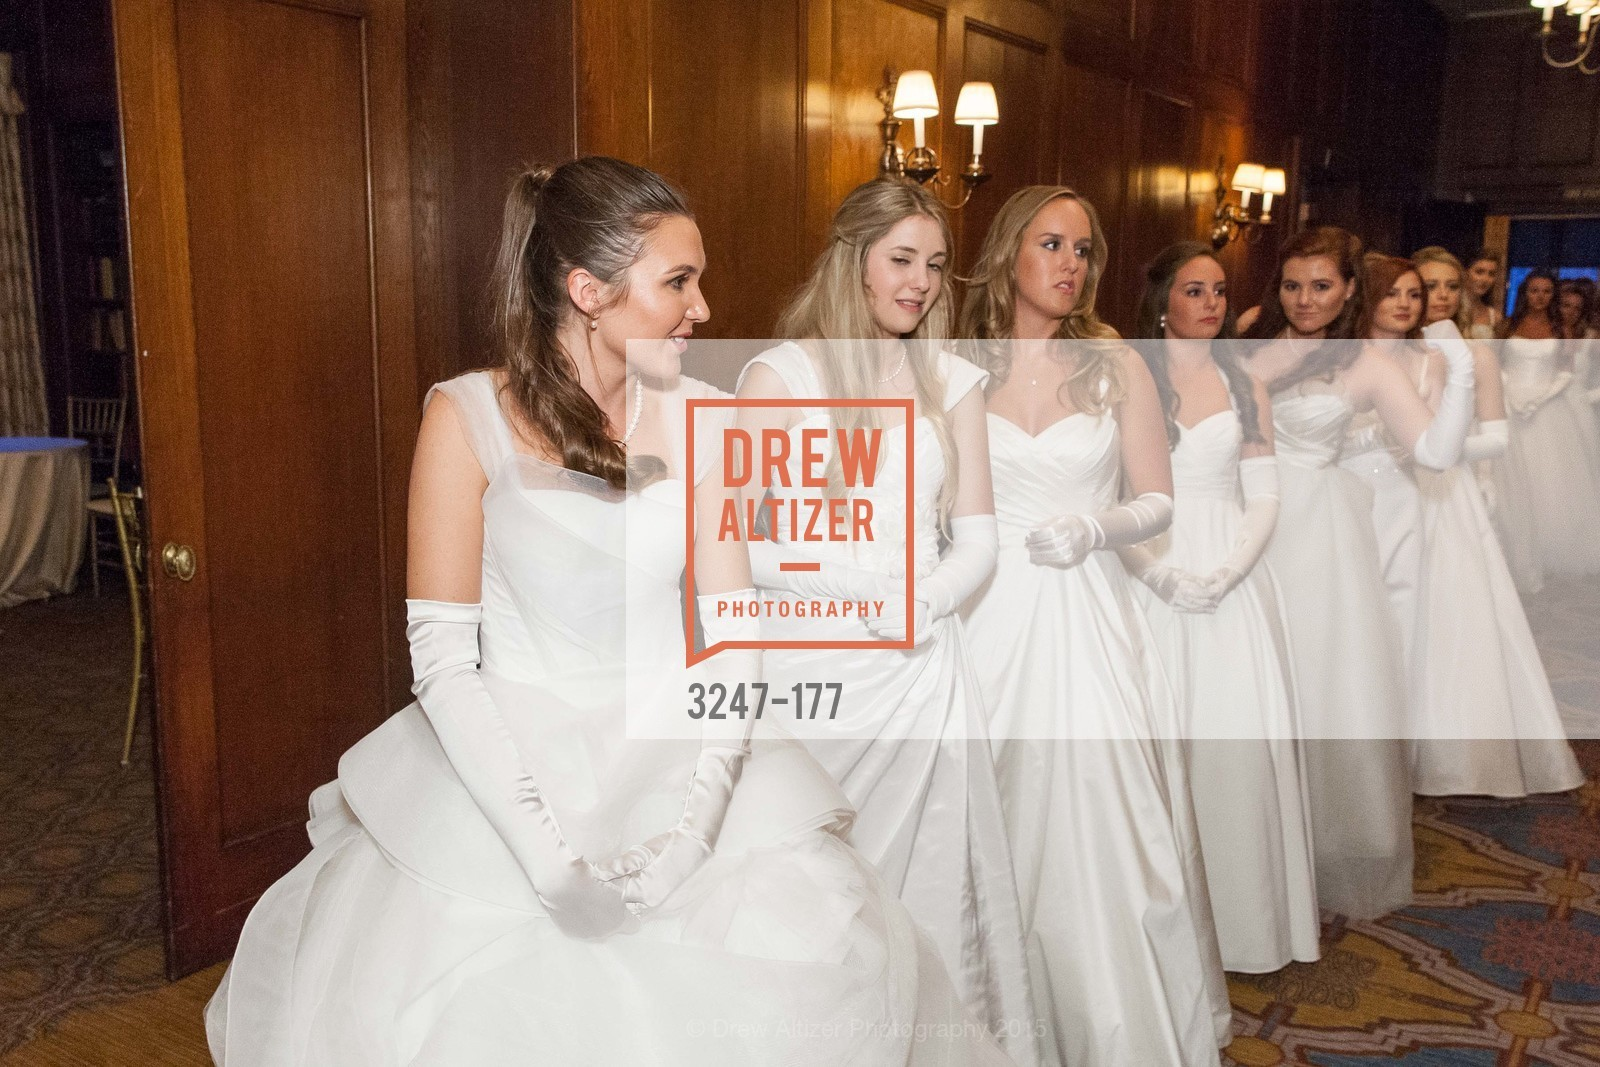 Jennifer Hannah Baylis, Julia Marley Chenette, Katarina Lina Churich, Hailey Elizabeth Cusack, Kendall Marion Finnegan, The 2015 San Francisco Debutante Ball, The Westin St. Francis San Francisco Union Square. 335 Powell St, June 20th, 2015,Drew Altizer, Drew Altizer Photography, full-service event agency, private events, San Francisco photographer, photographer California